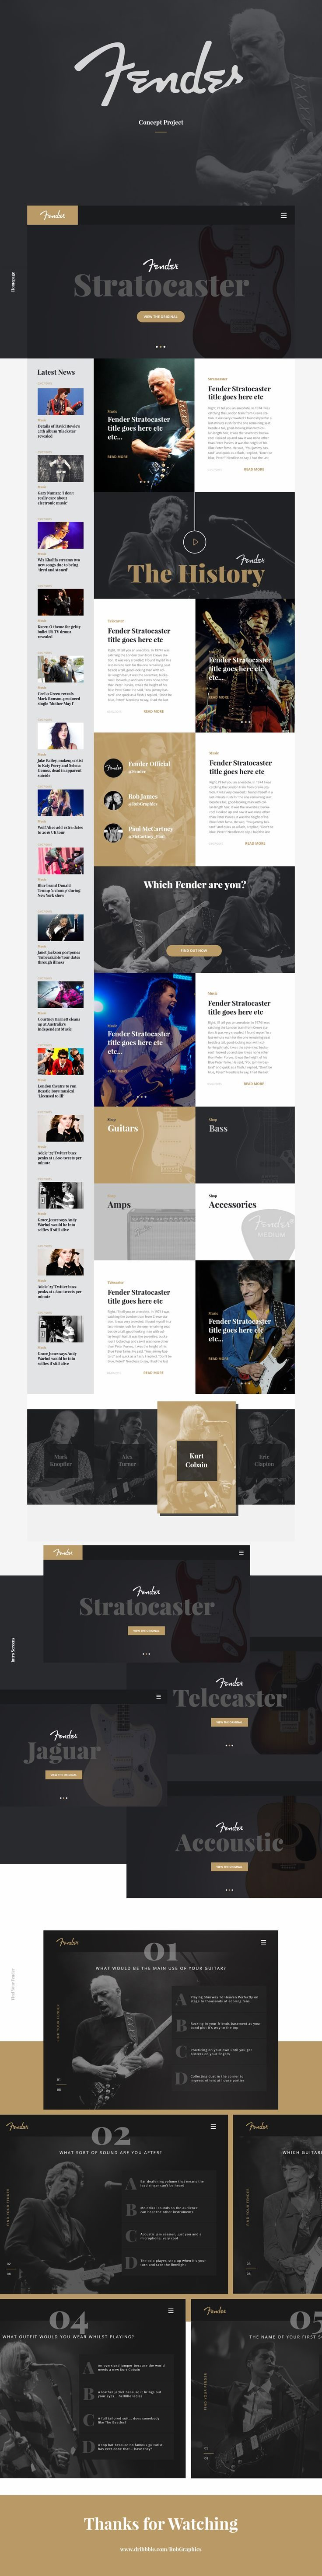 Fender Concept Page by Rob James